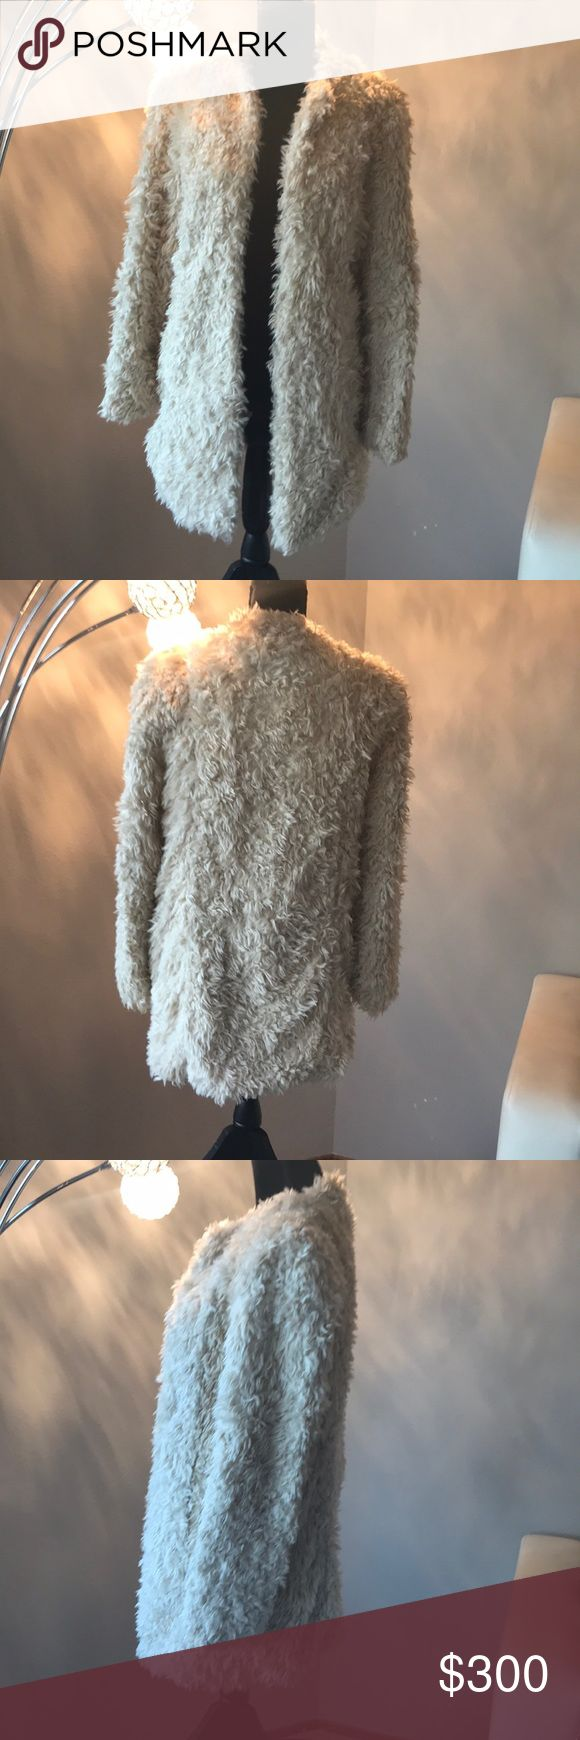 Zadig and Voltaire shag coat Cream shag coat. Eye and hook closure. 2 front pockets. Length 32in. Size S also fits M Zadig & Voltaire Jackets & Coats